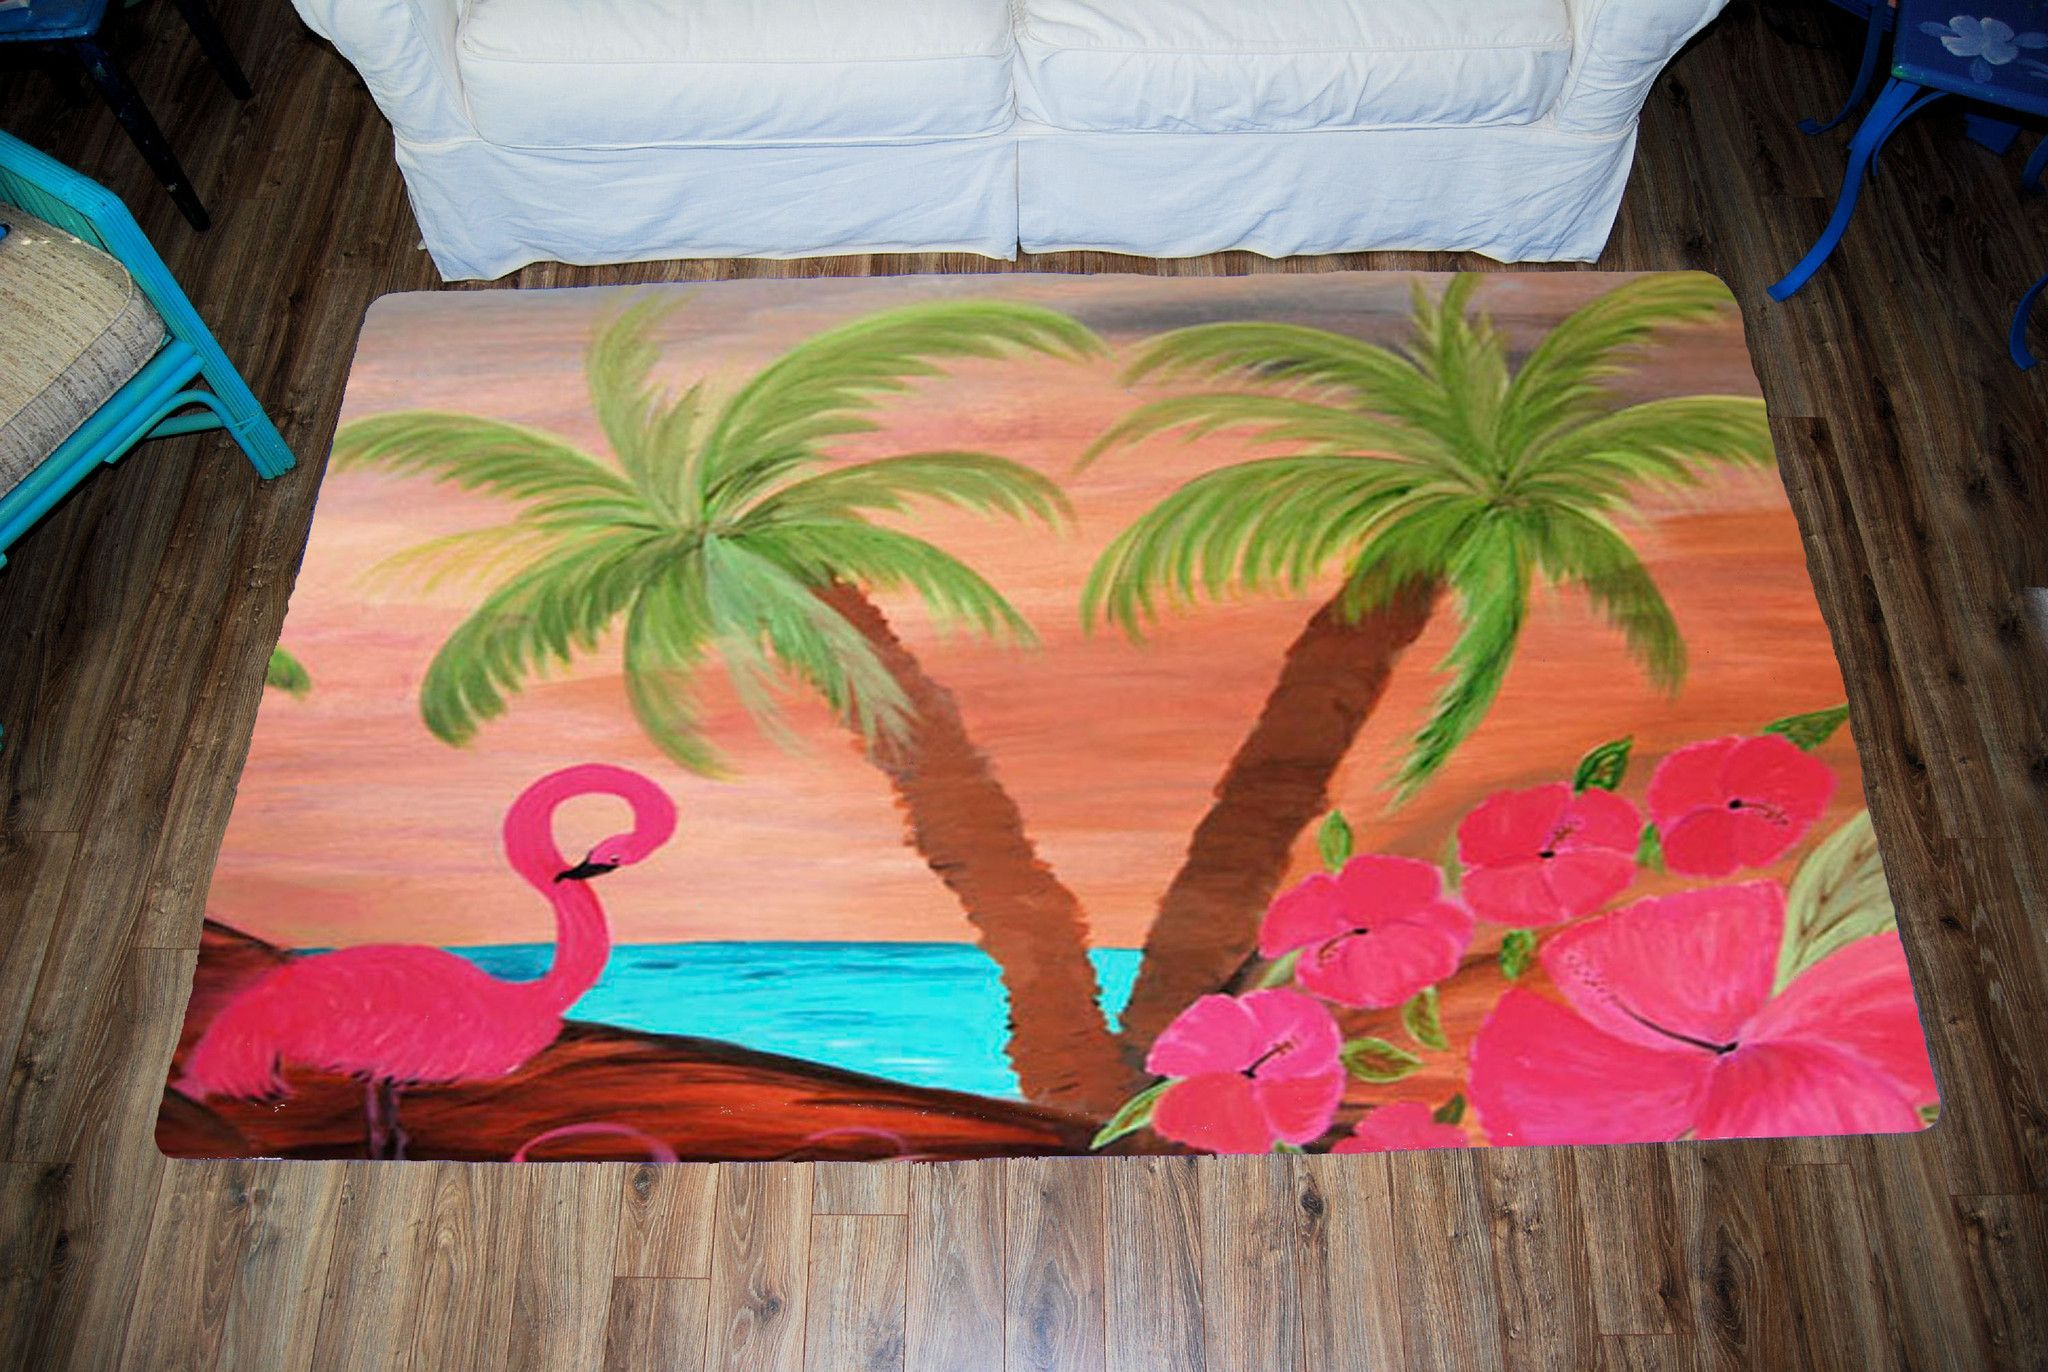 Flamingo in paradise garden tropical bird area rug Plush Area Rug from my art Art appears on the top side, which is made of a soft plush fabric. Bottom is made of durable white rubber mat with rounded